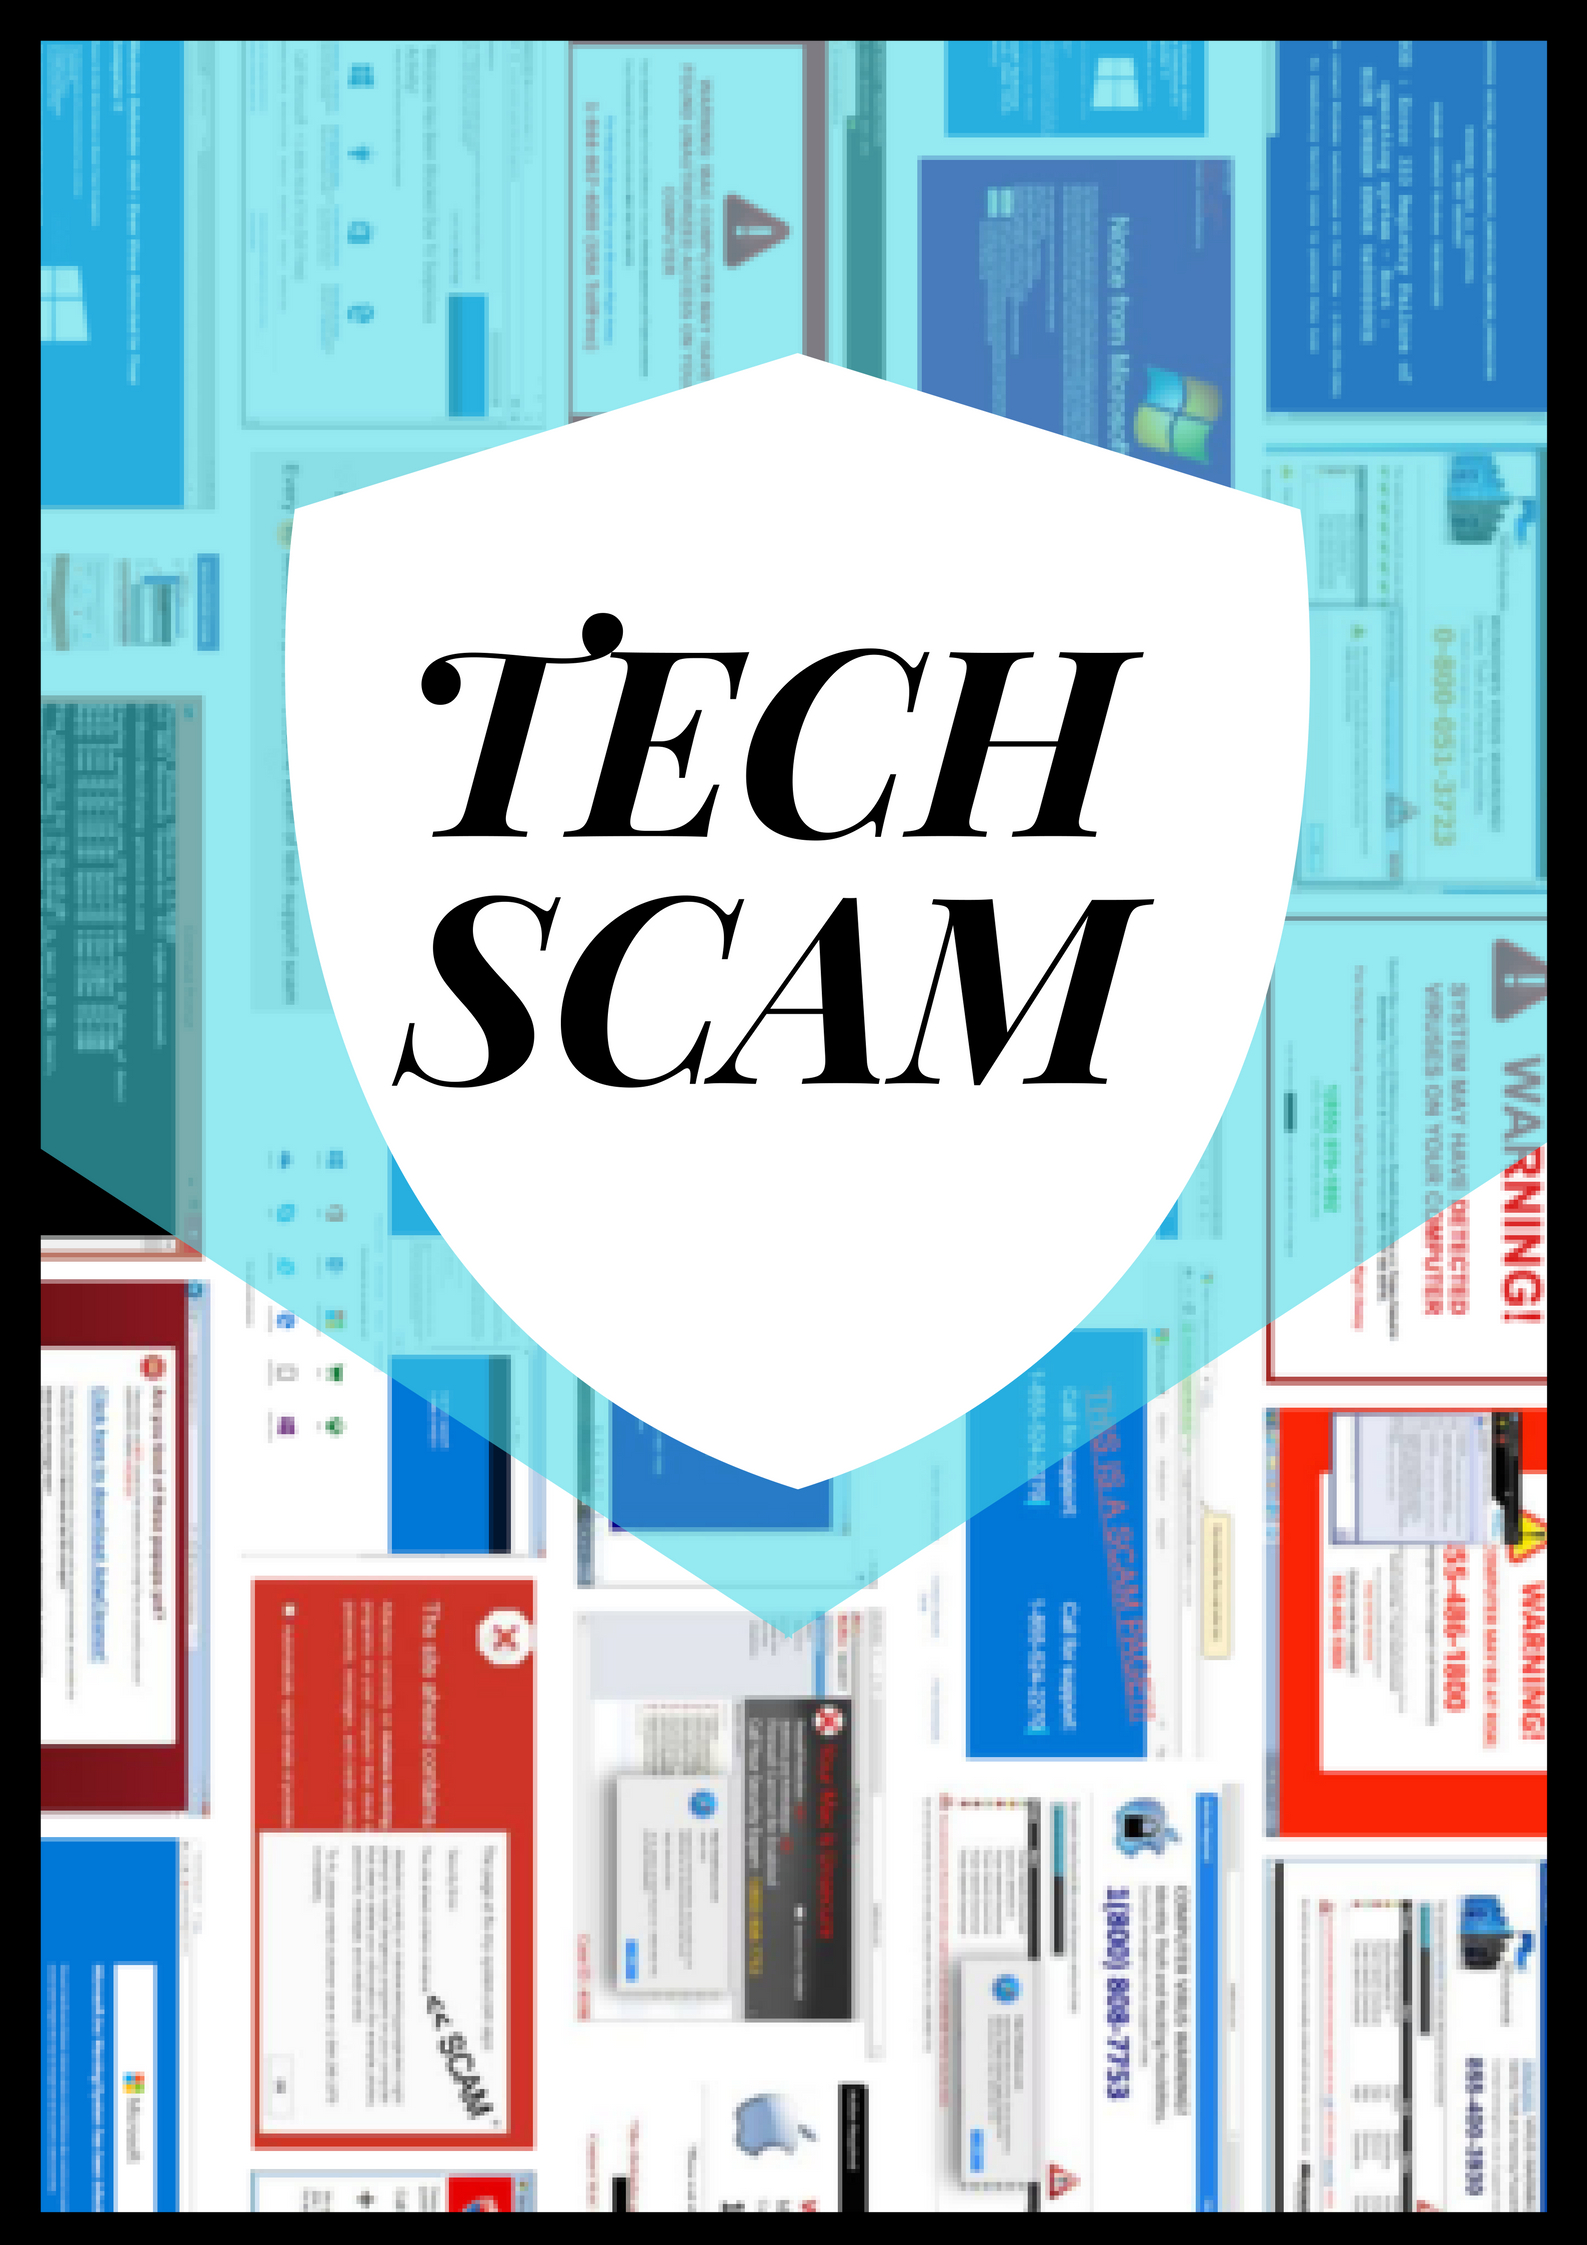 Technical scam